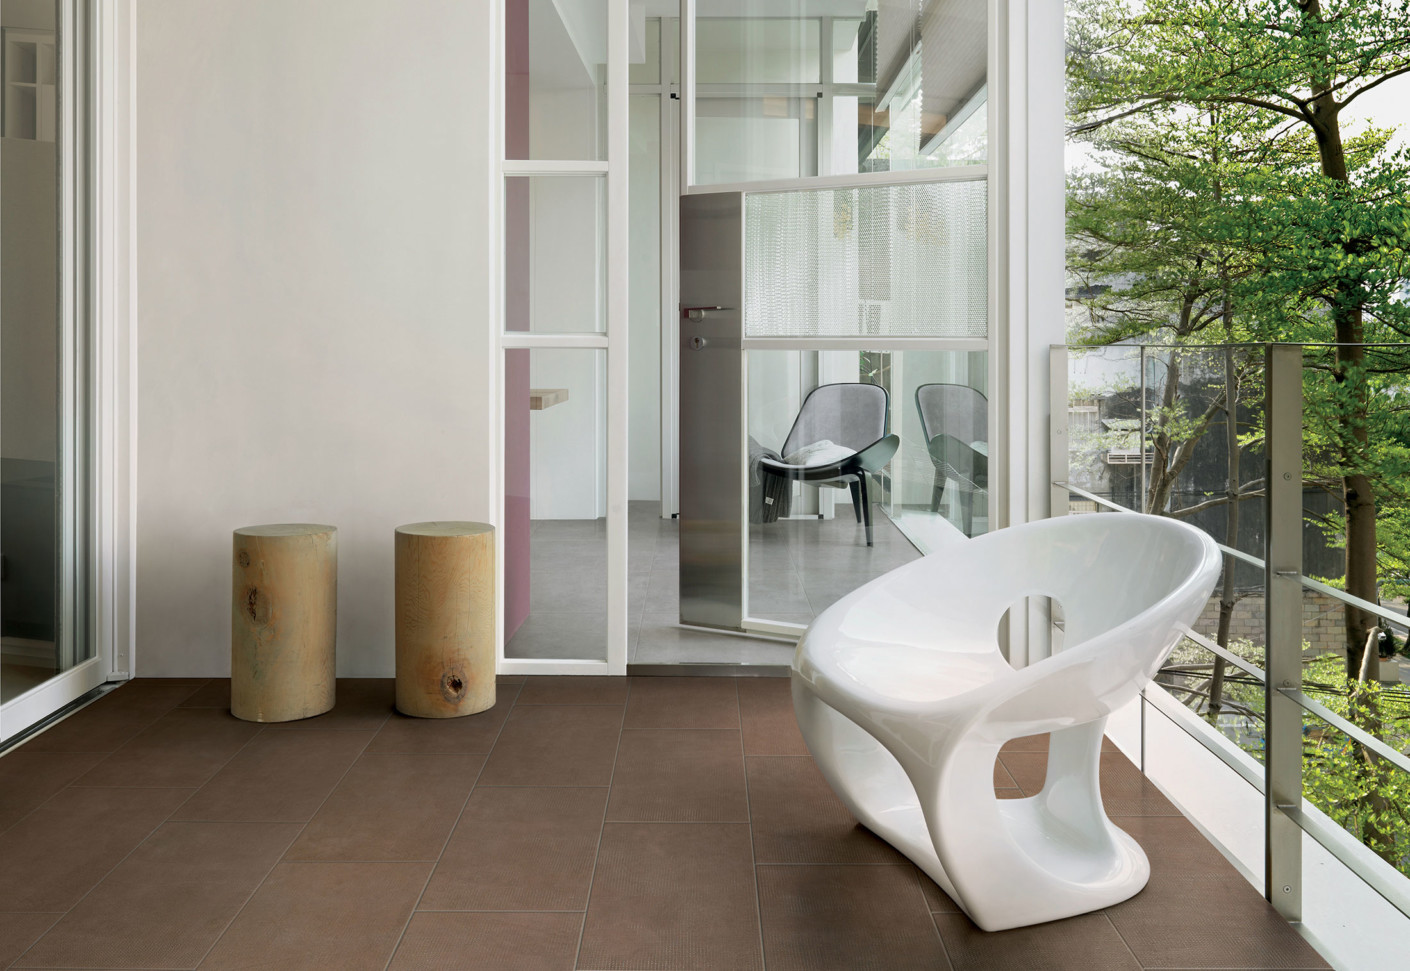 Urban Touch By Fioranese - SS Tile & Stone